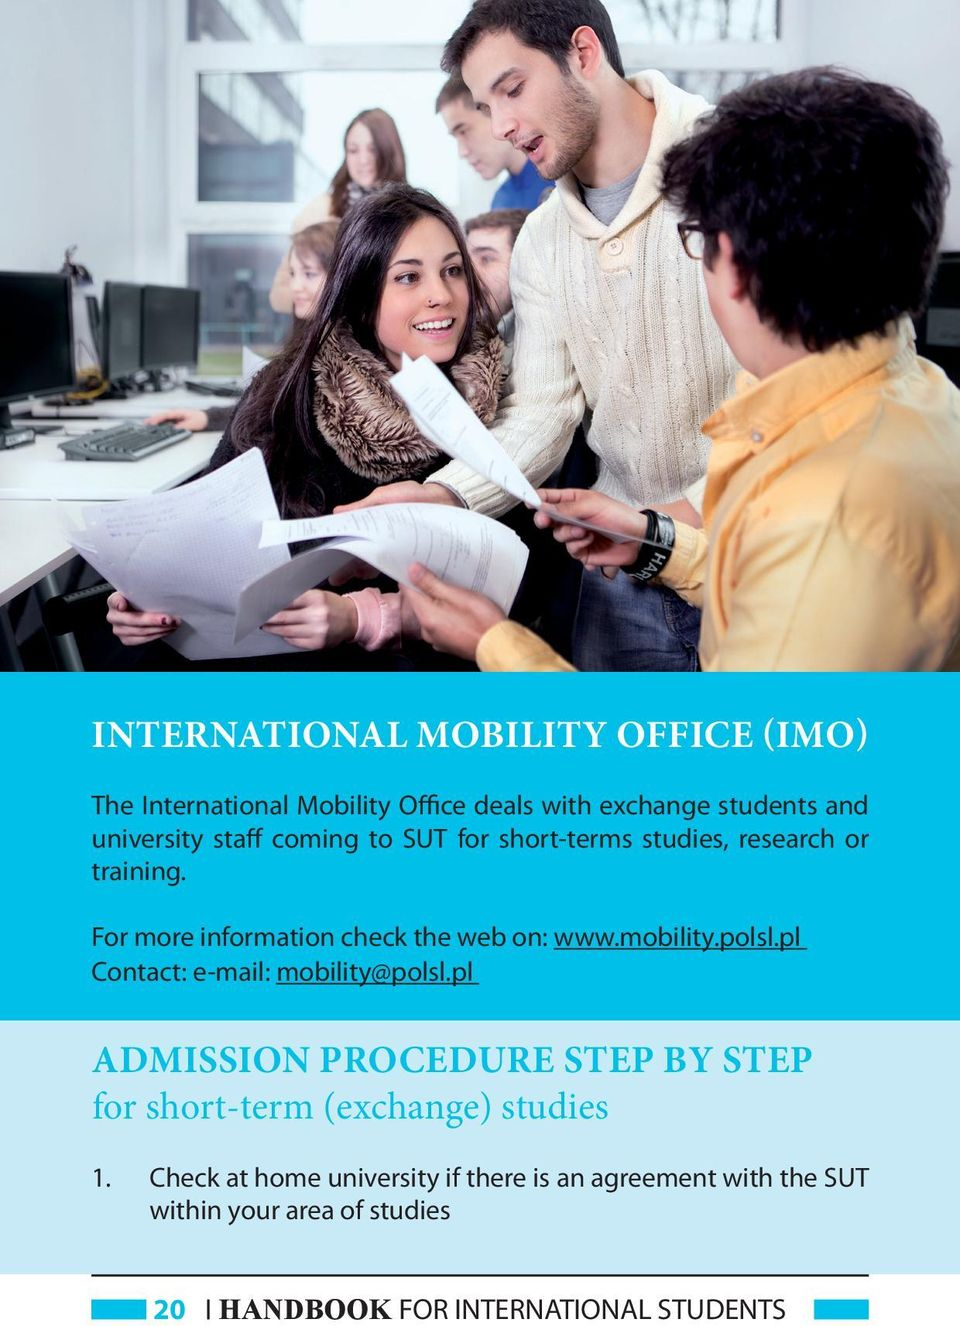 polsl.pl Contact: e-mail: mobility@polsl.pl ADMISSION PROCEDURE STEP BY STEP for short-term (exchange) studies 1.